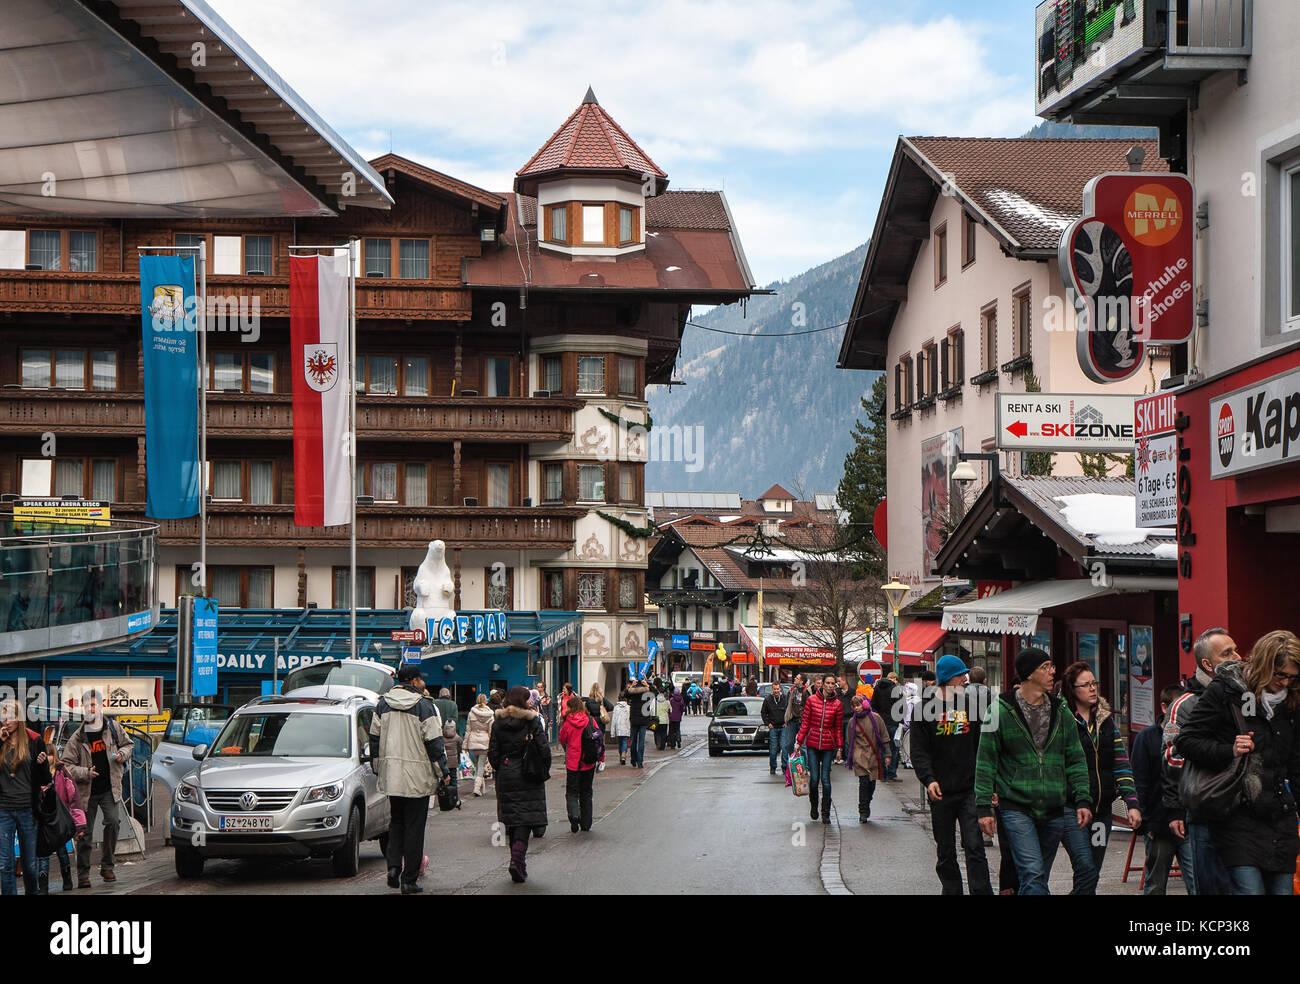 MAYRHOFEN, AUSTRIA - JANUARY 08, 2011 - Mayrhofen, the center of the ski resort during the Christmas holidays. A - Stock Image